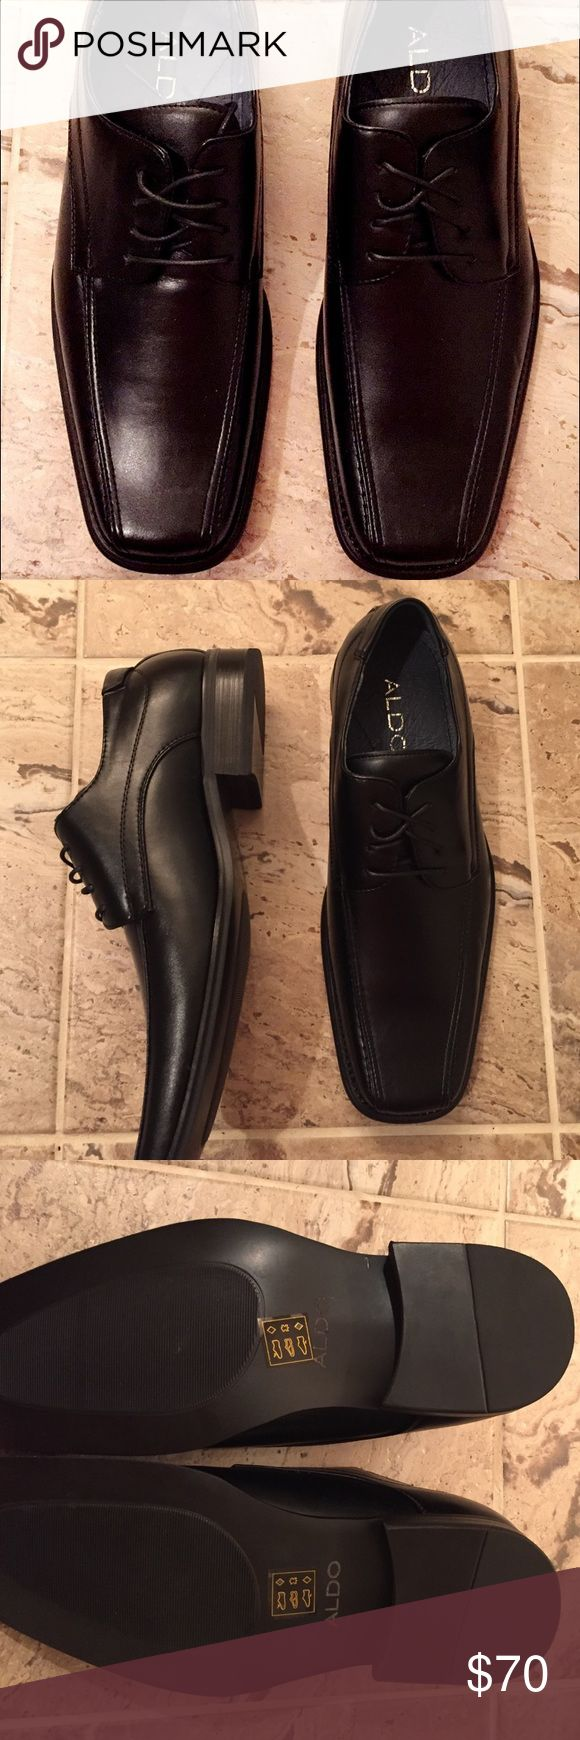 New in box Aldo men's shoes These shoes have never been worn. They are still in the original box and even have the tissue stuffing inside of the shoe. Would be perfect for a Christmas gift or a New Years outfit! Aldo Shoes Oxfords & Derbys